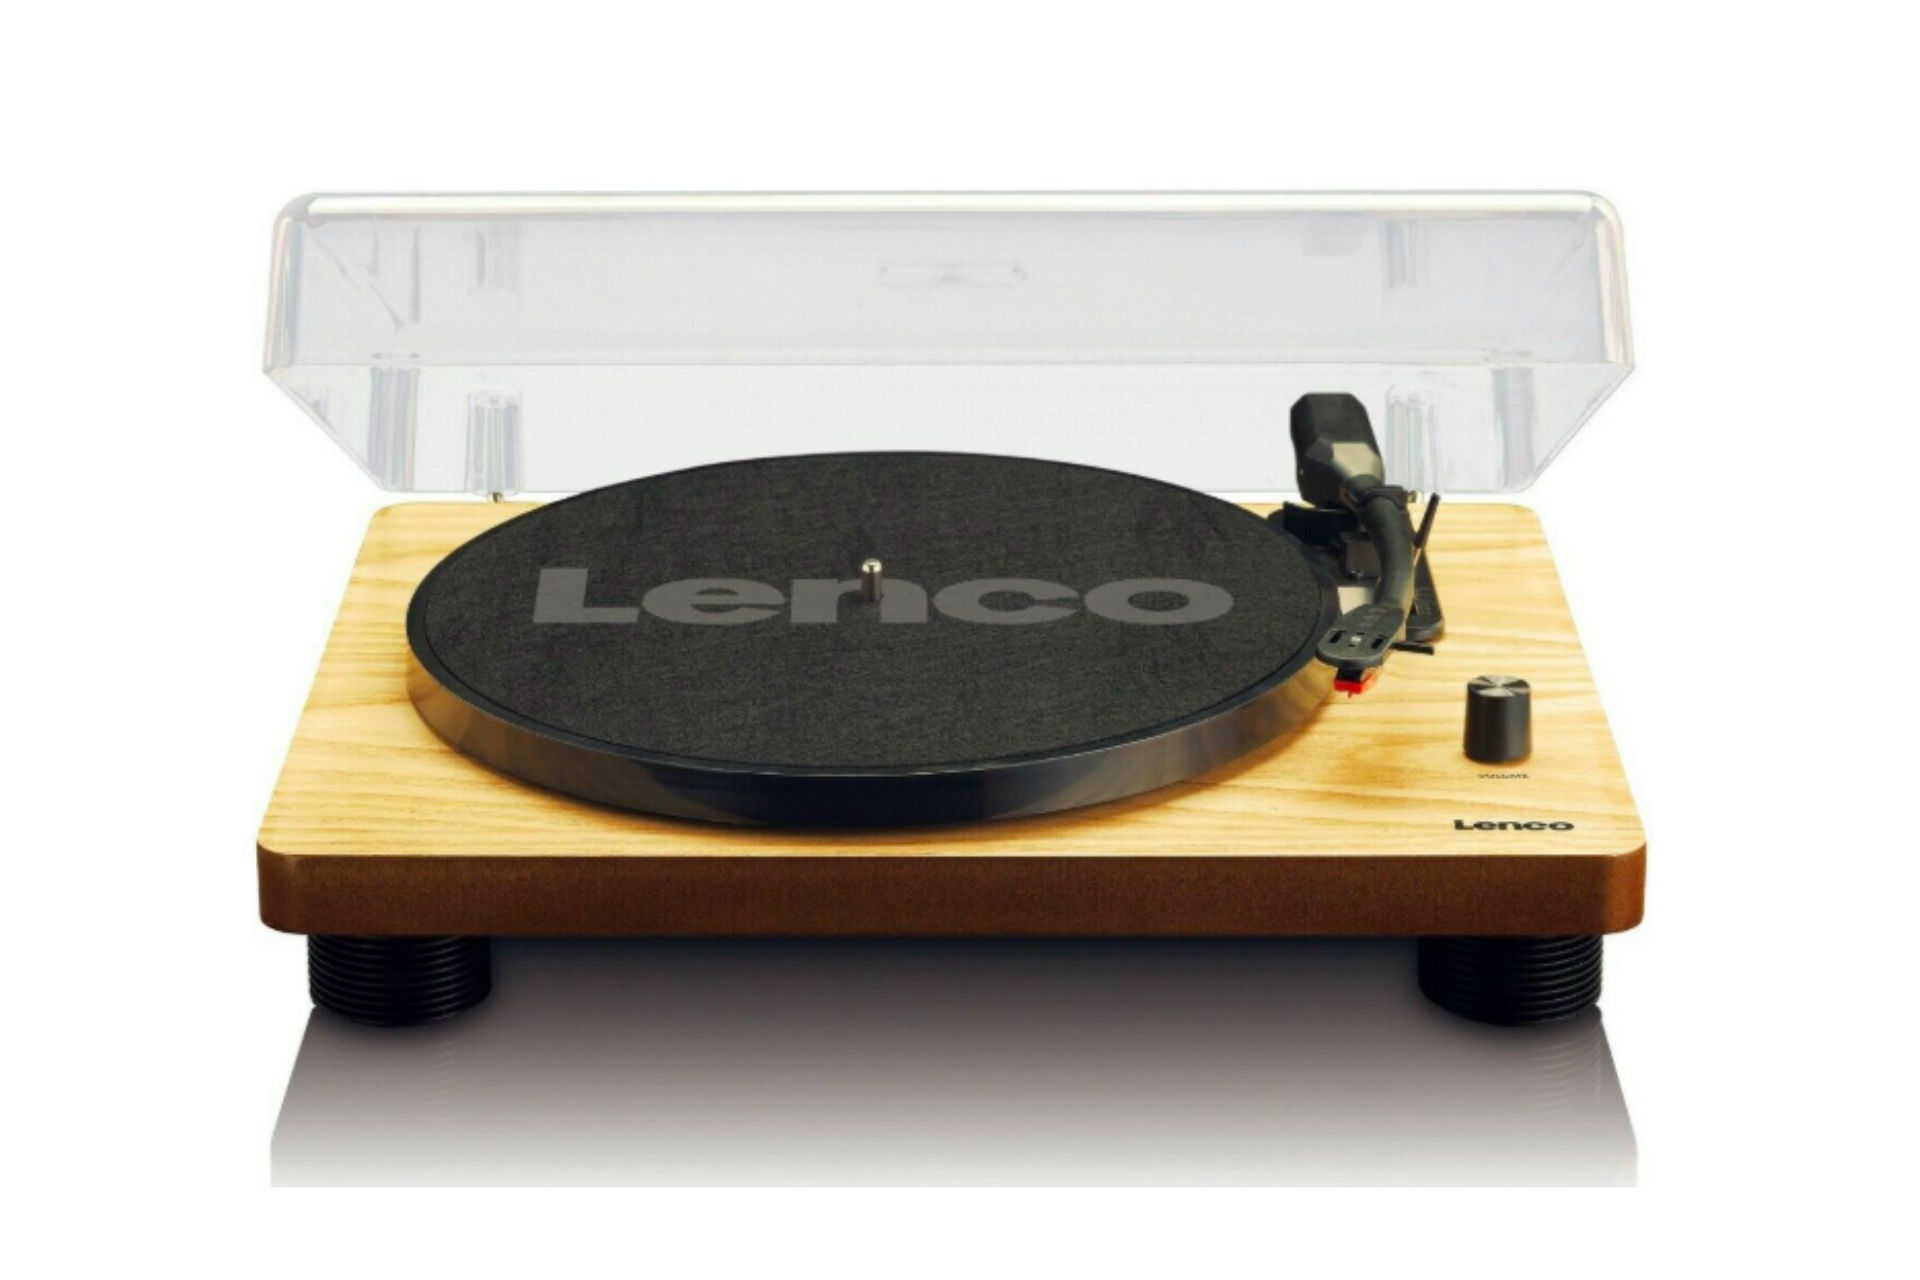 Lenco LS-50 turntable with built-in speakers + USB Bluetooth